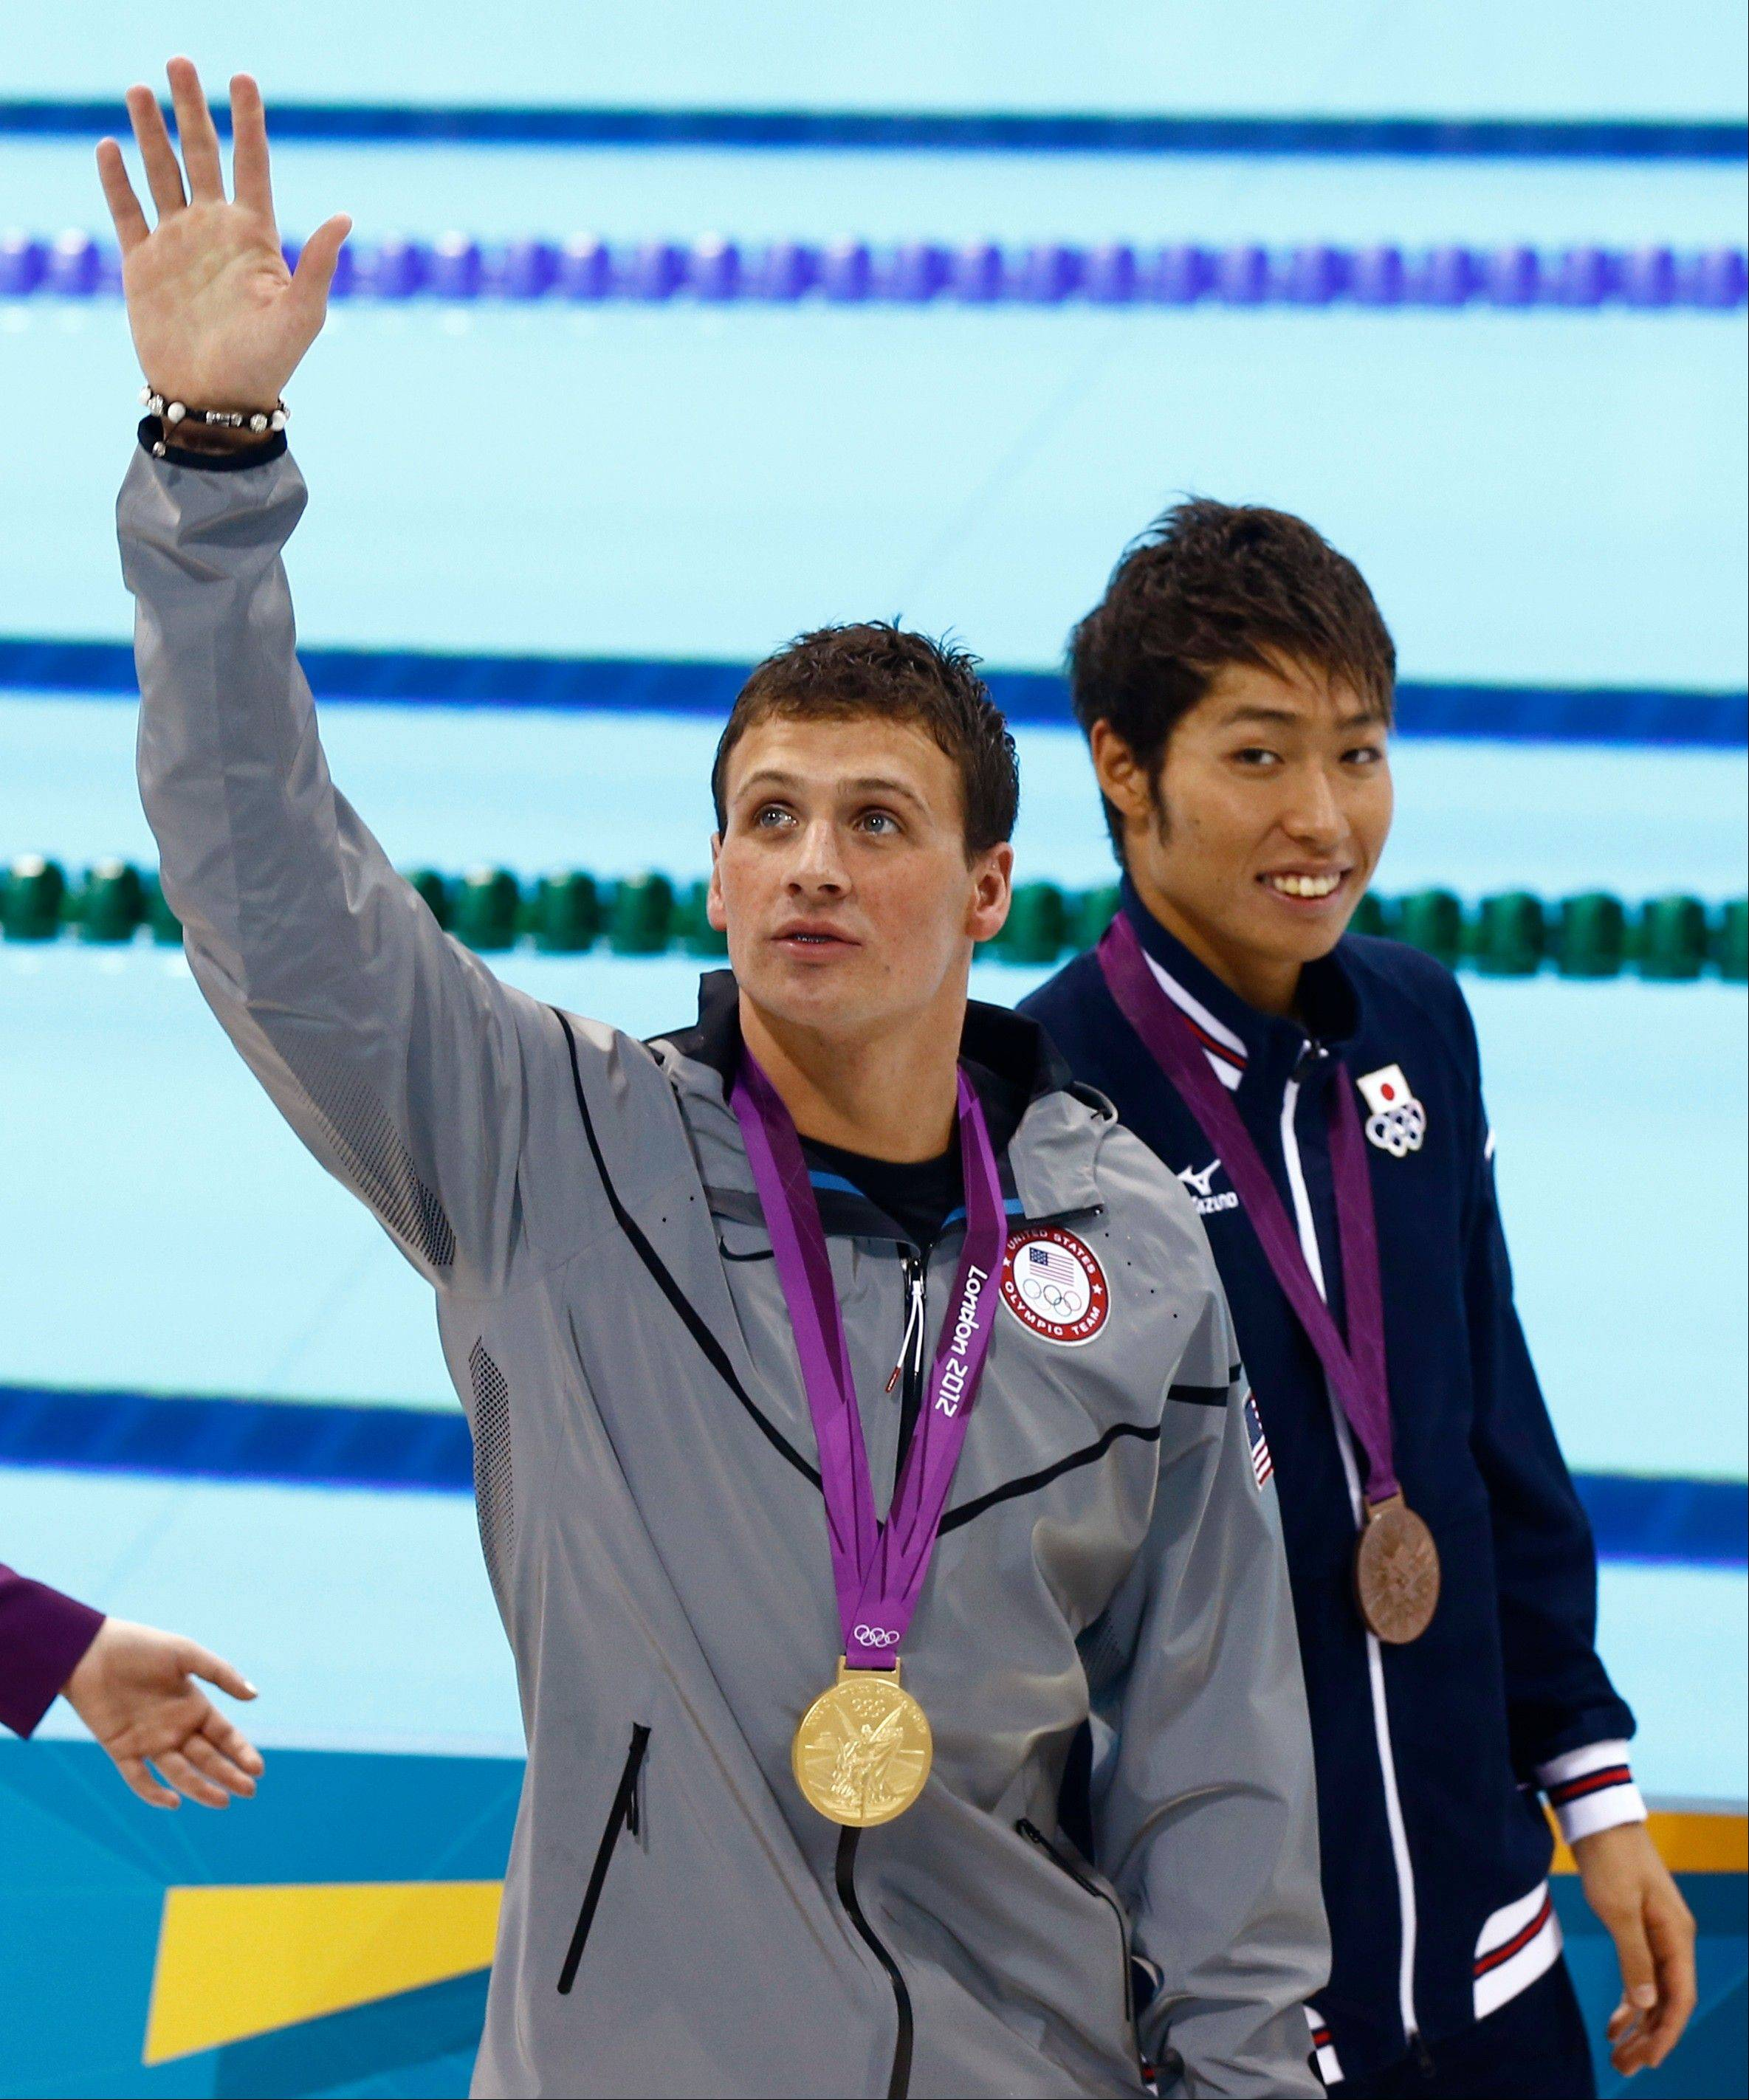 The United States' Ryan Lochte waves during the medal ceremony for men's 400-meter individual medley swimming final Saturday in London. Japan's Kosuke Hagino wears the bronze.